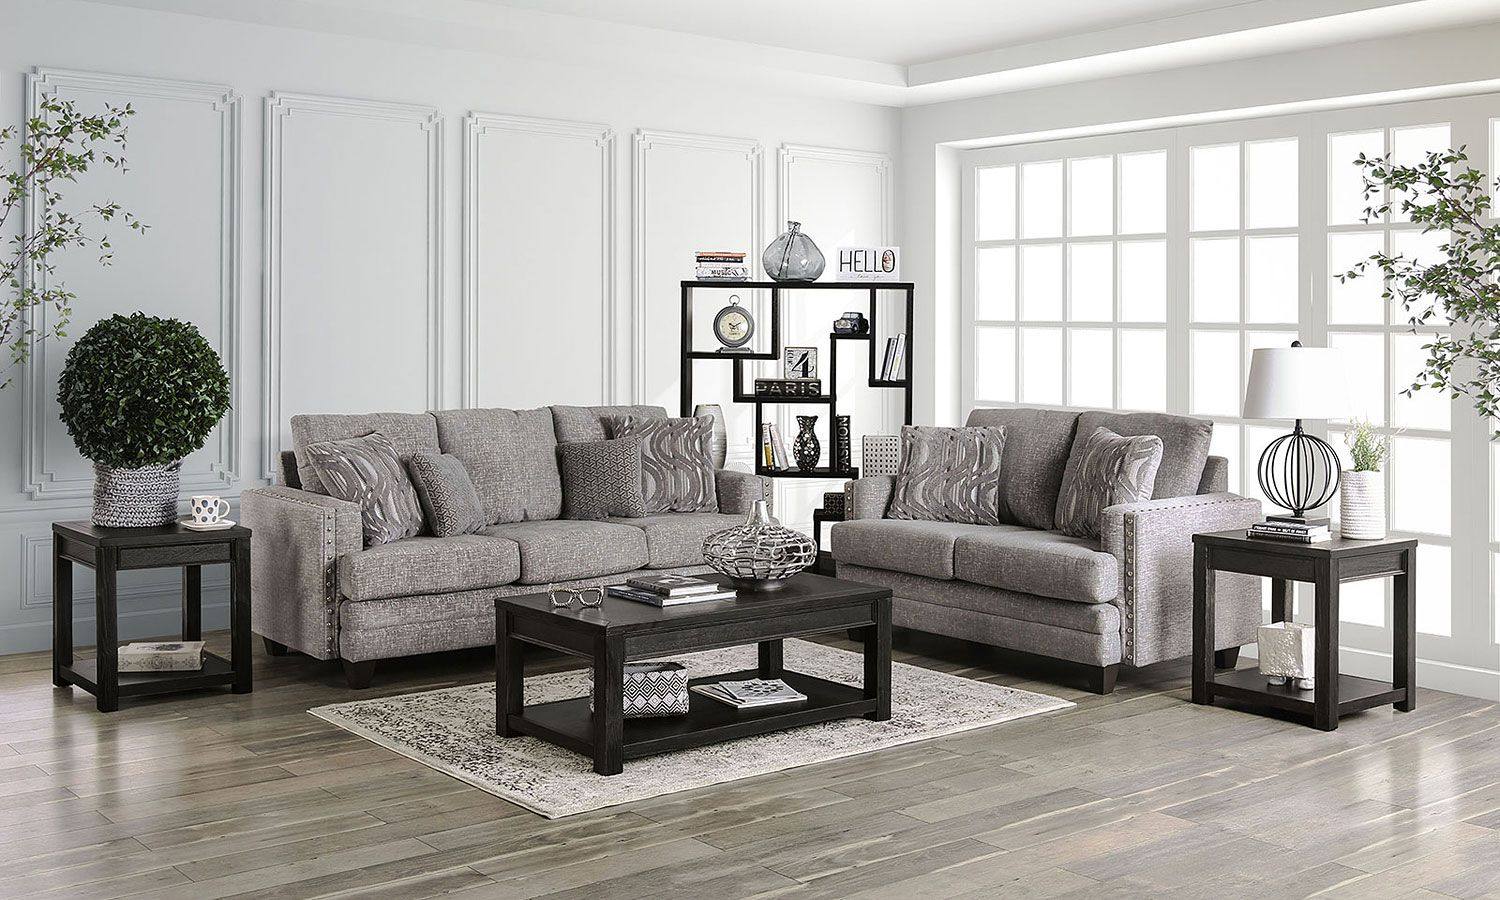 Emelie Living Room Set Living Room Sofa Couch And Loveseat Set